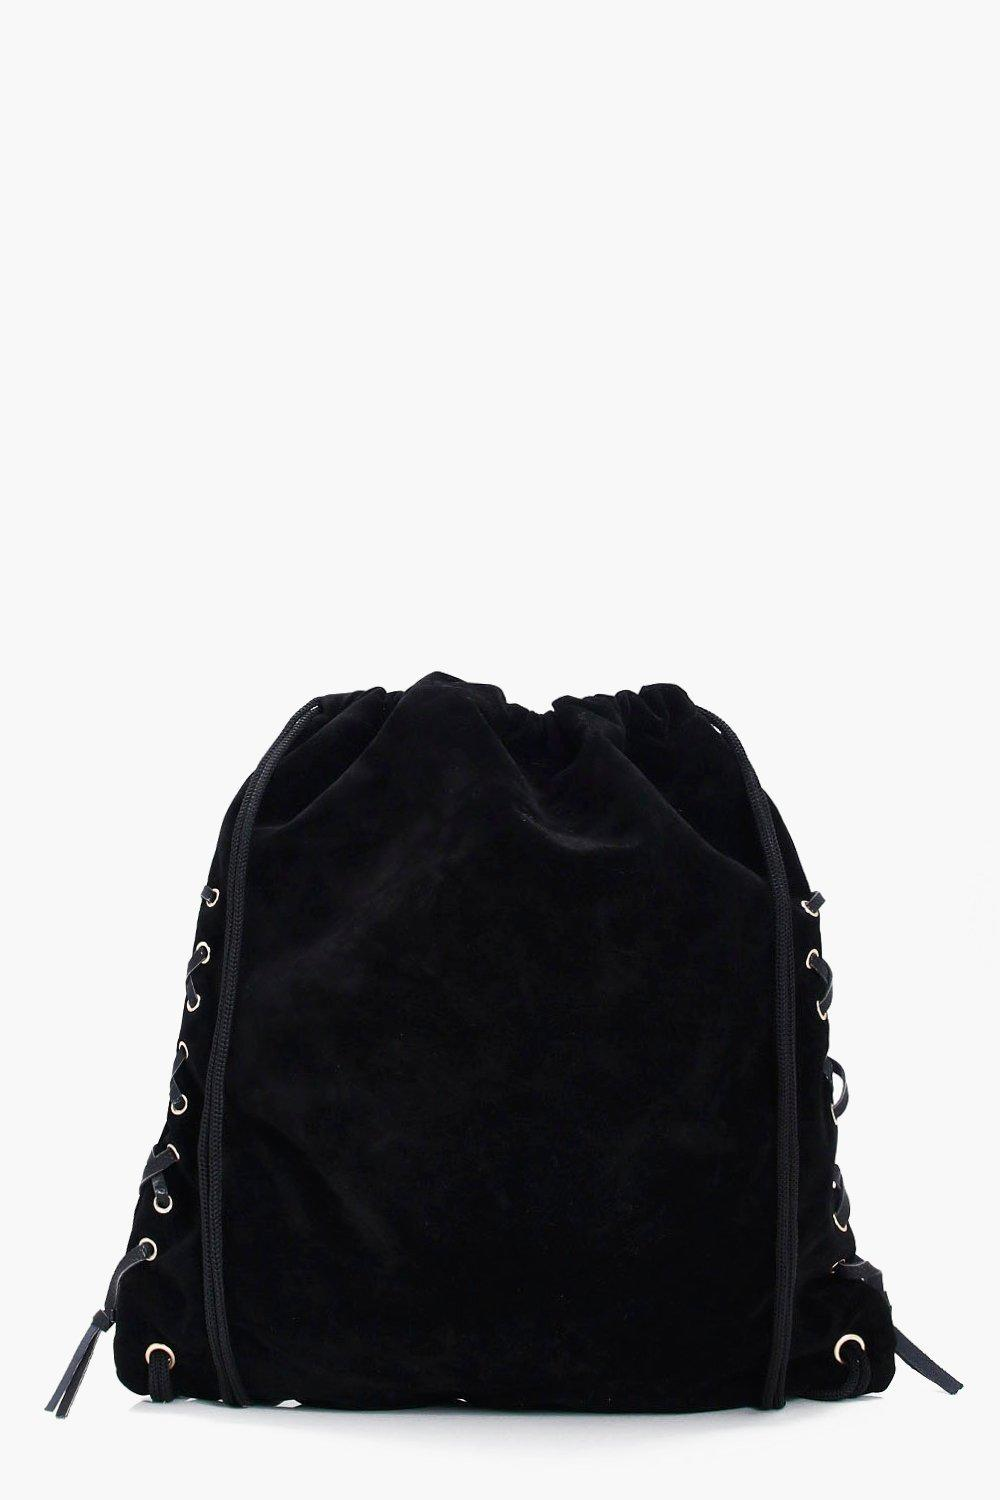 Lace Up Drawstring Rucksack - black - Natalie Lace